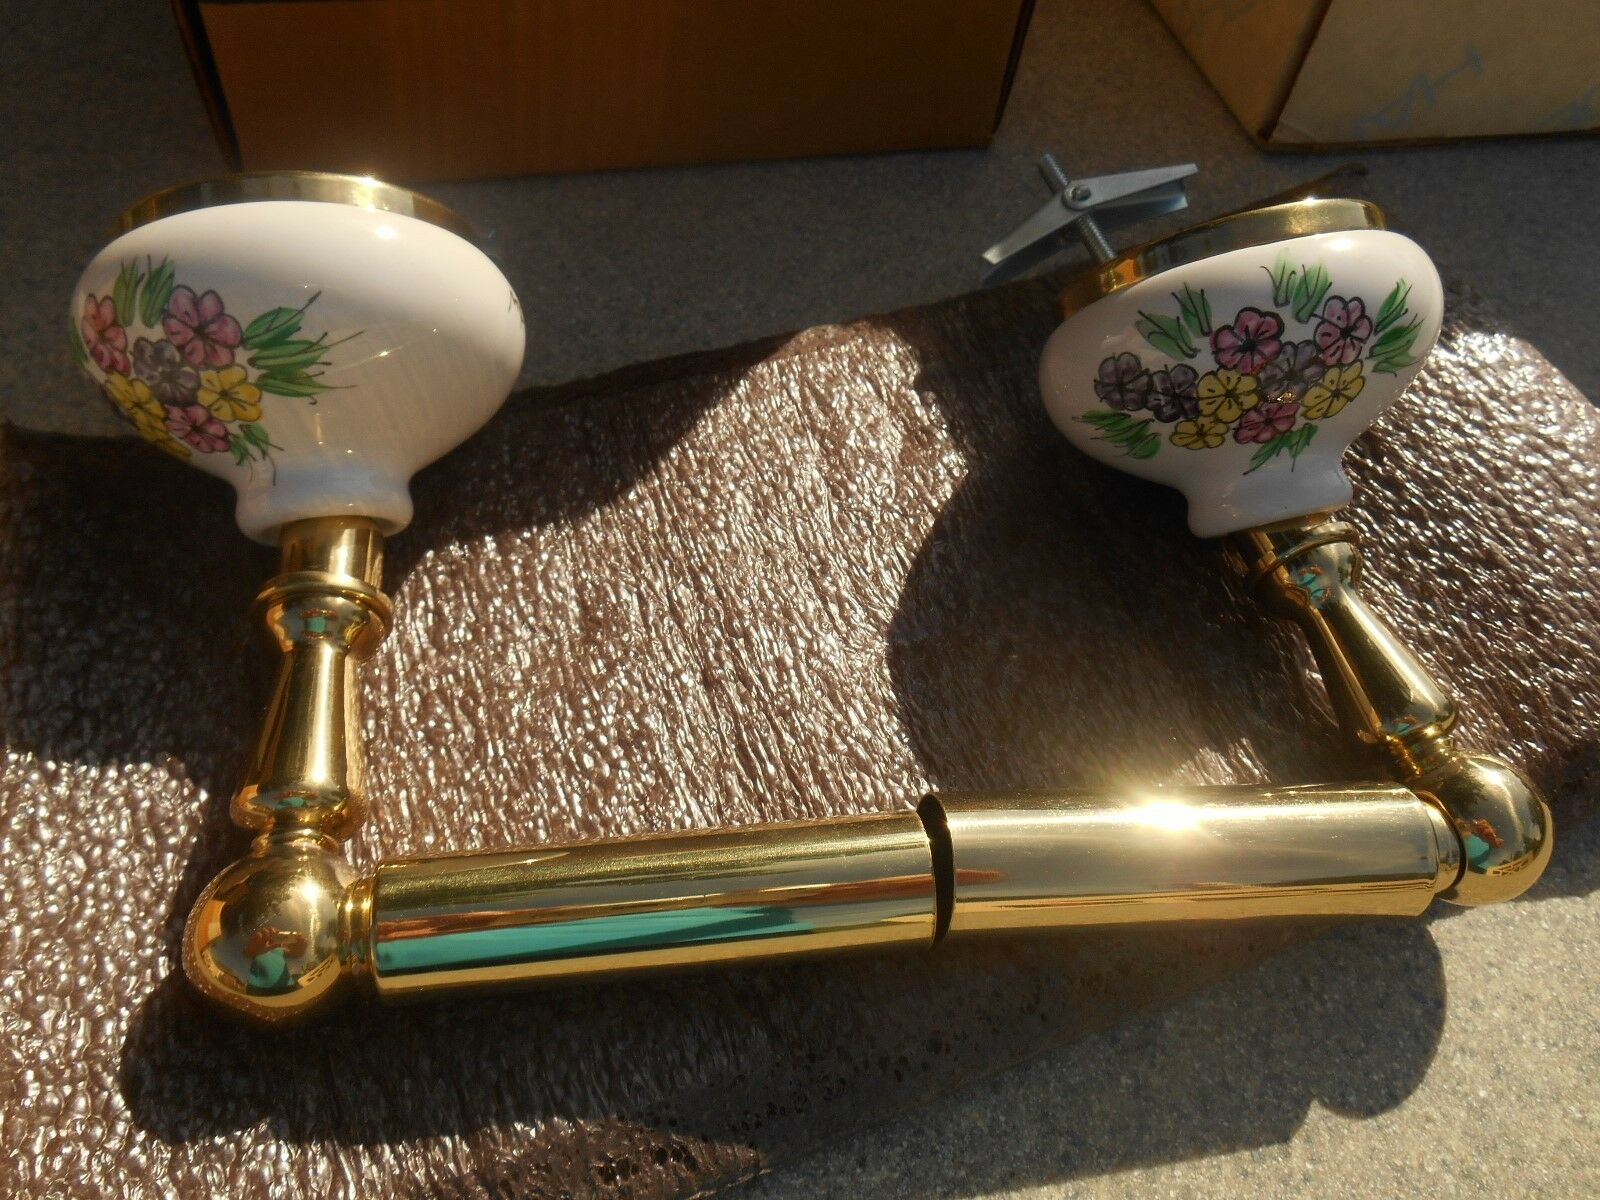 NOS HARDEN Solid Brass & Hand Hand Hand Painted and Signed Floral Porcelain Tissue Holder 133595